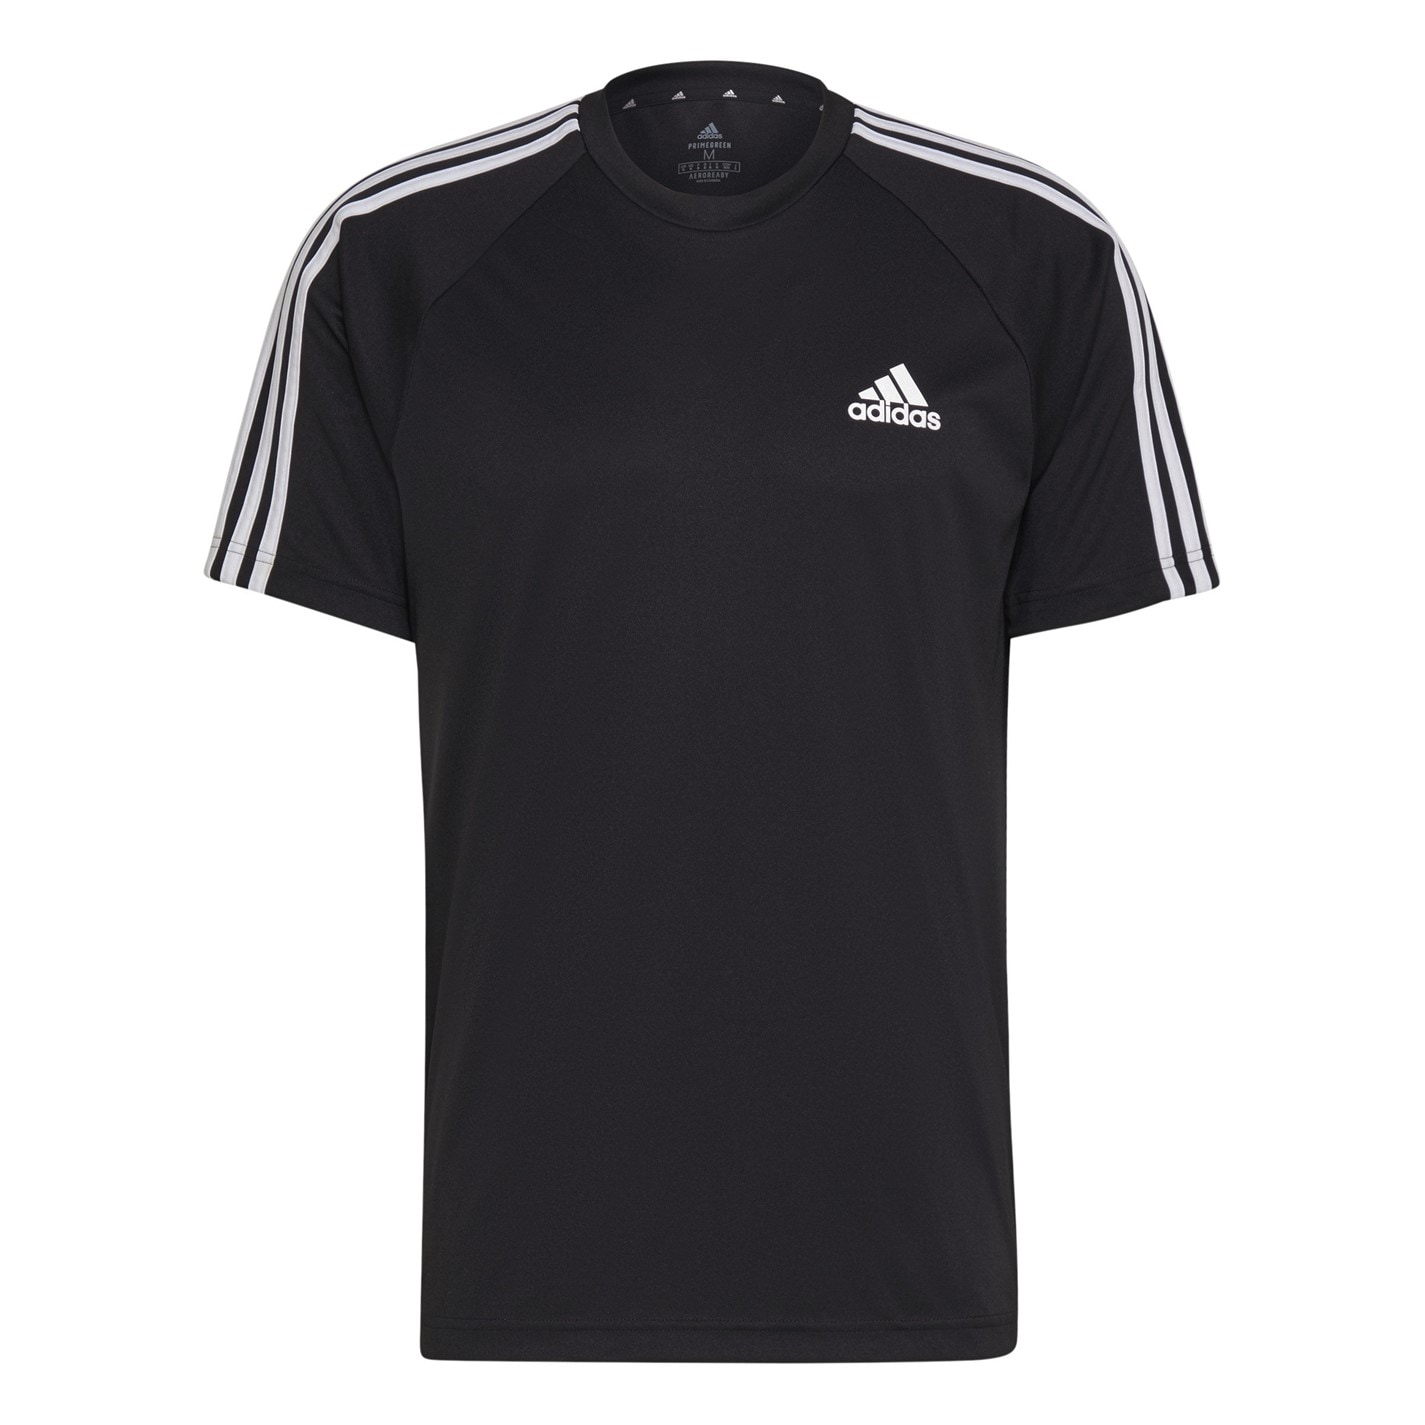 T Short Adidas Adidas 3 Stripe Estro T Shirt Football Training